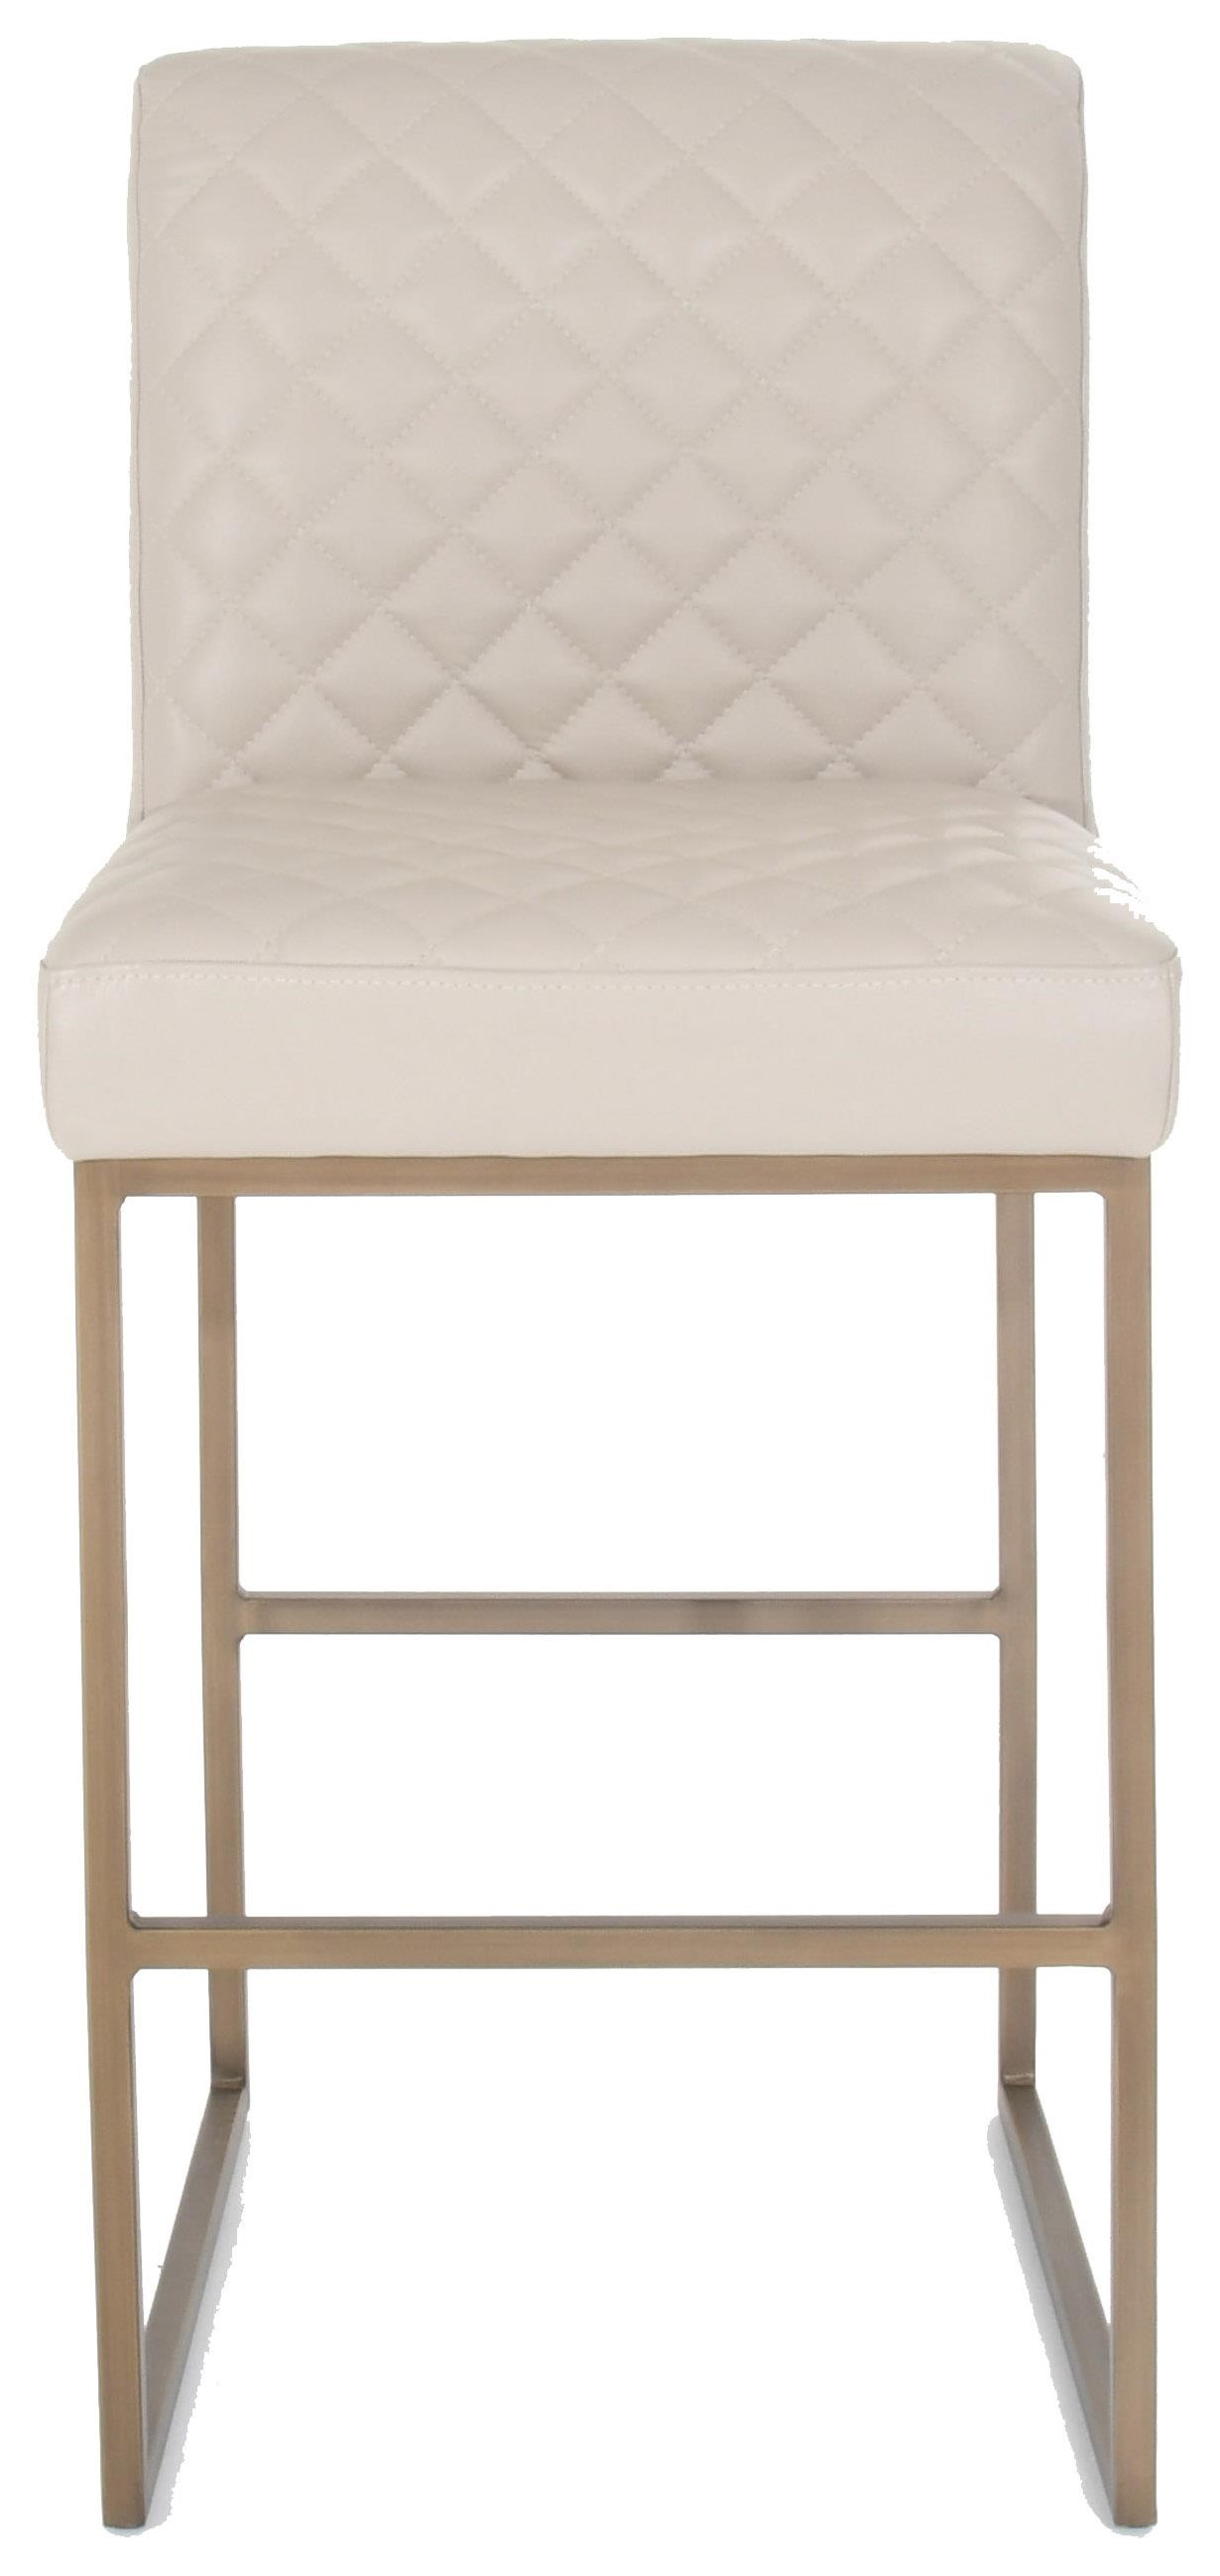 "Y1538 30"" Quilted Leather Bar Stool by Jason at Baer's Furniture"